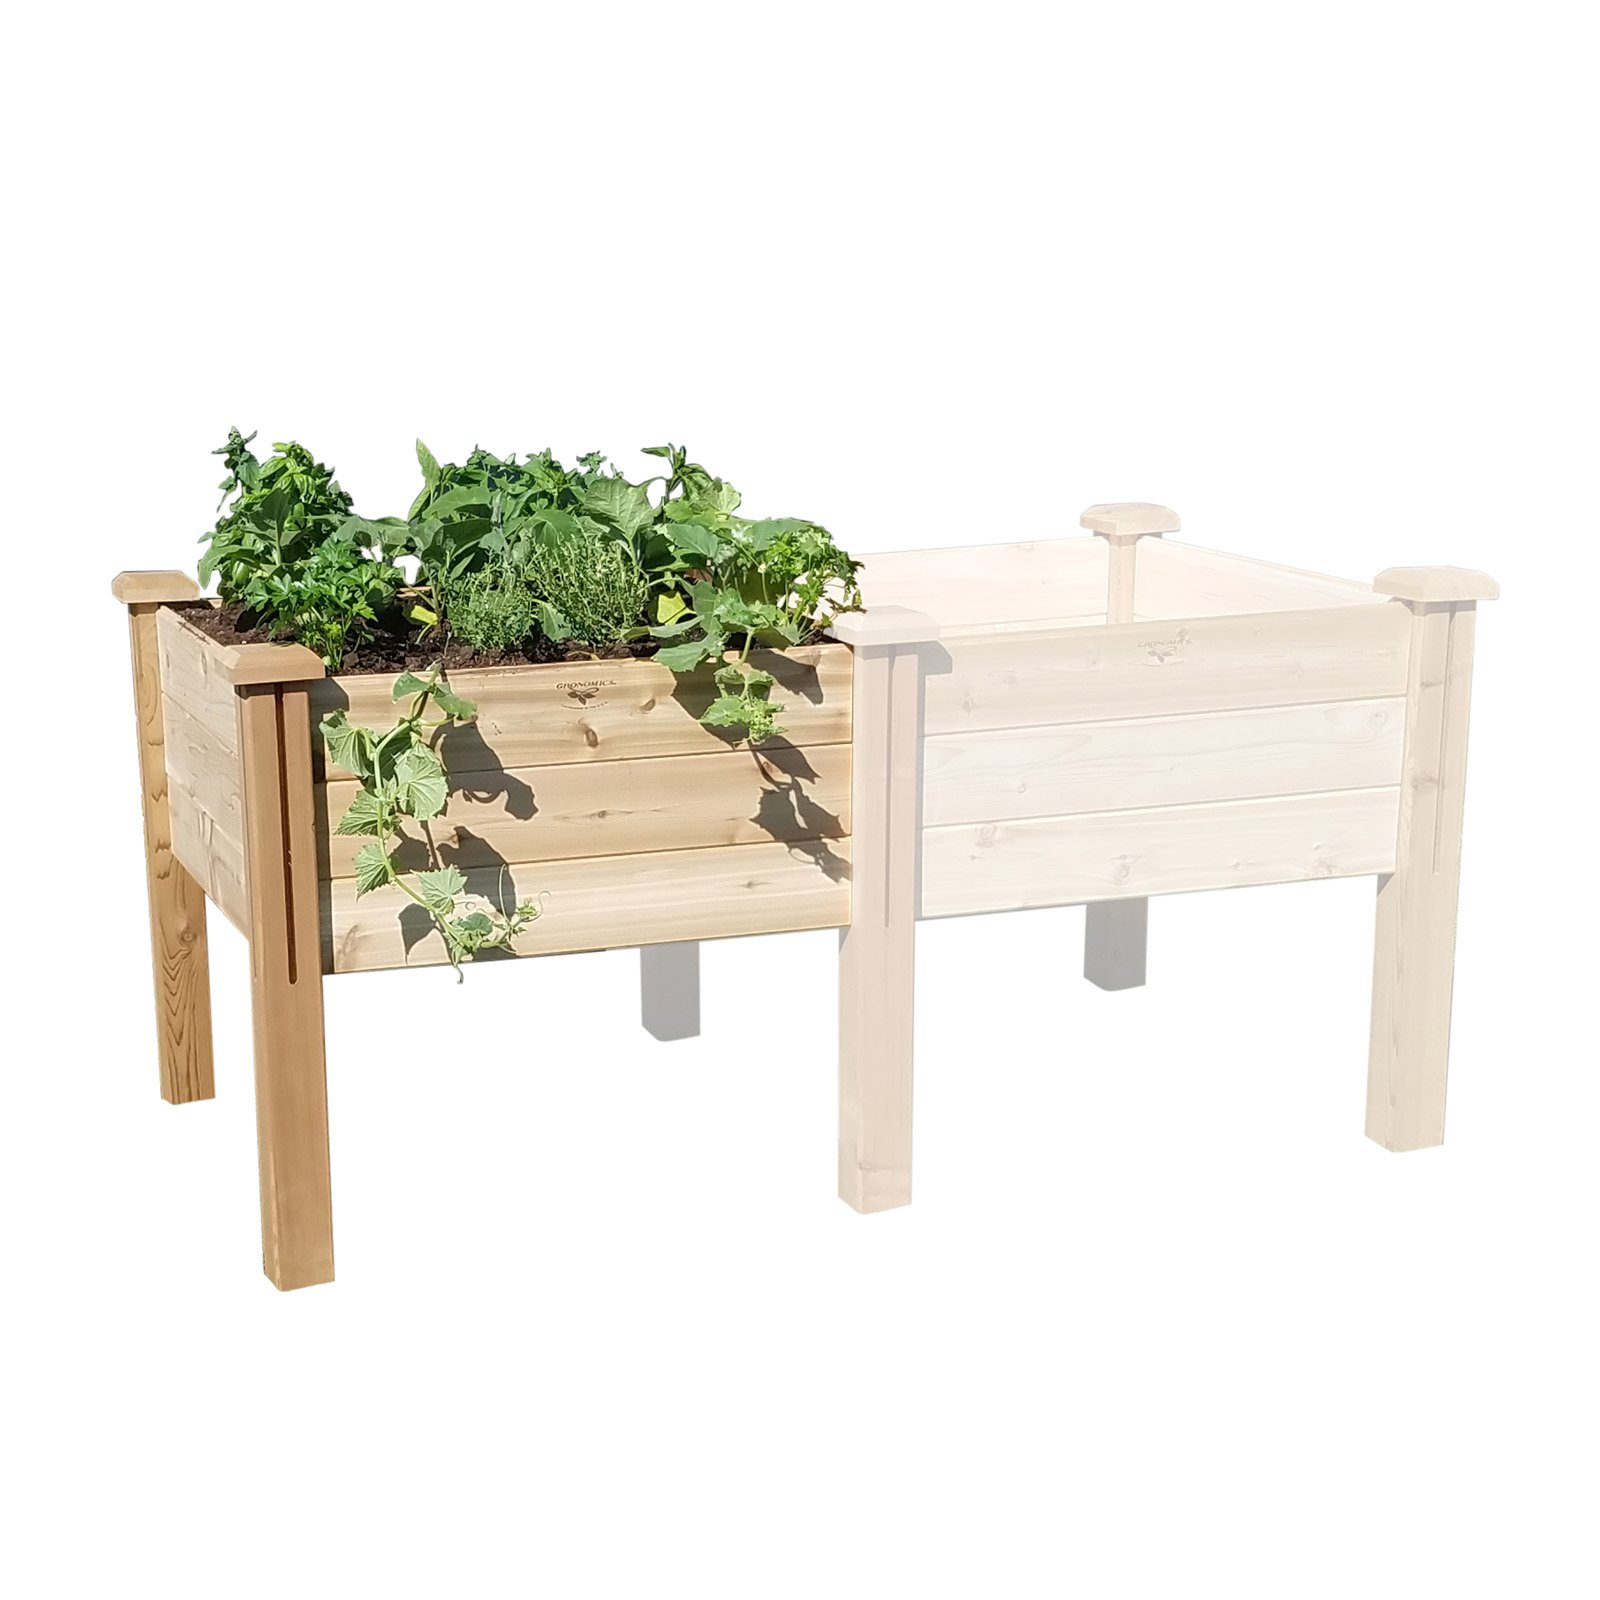 Gronomics Modular Elevated Garden Bed Extension Kit